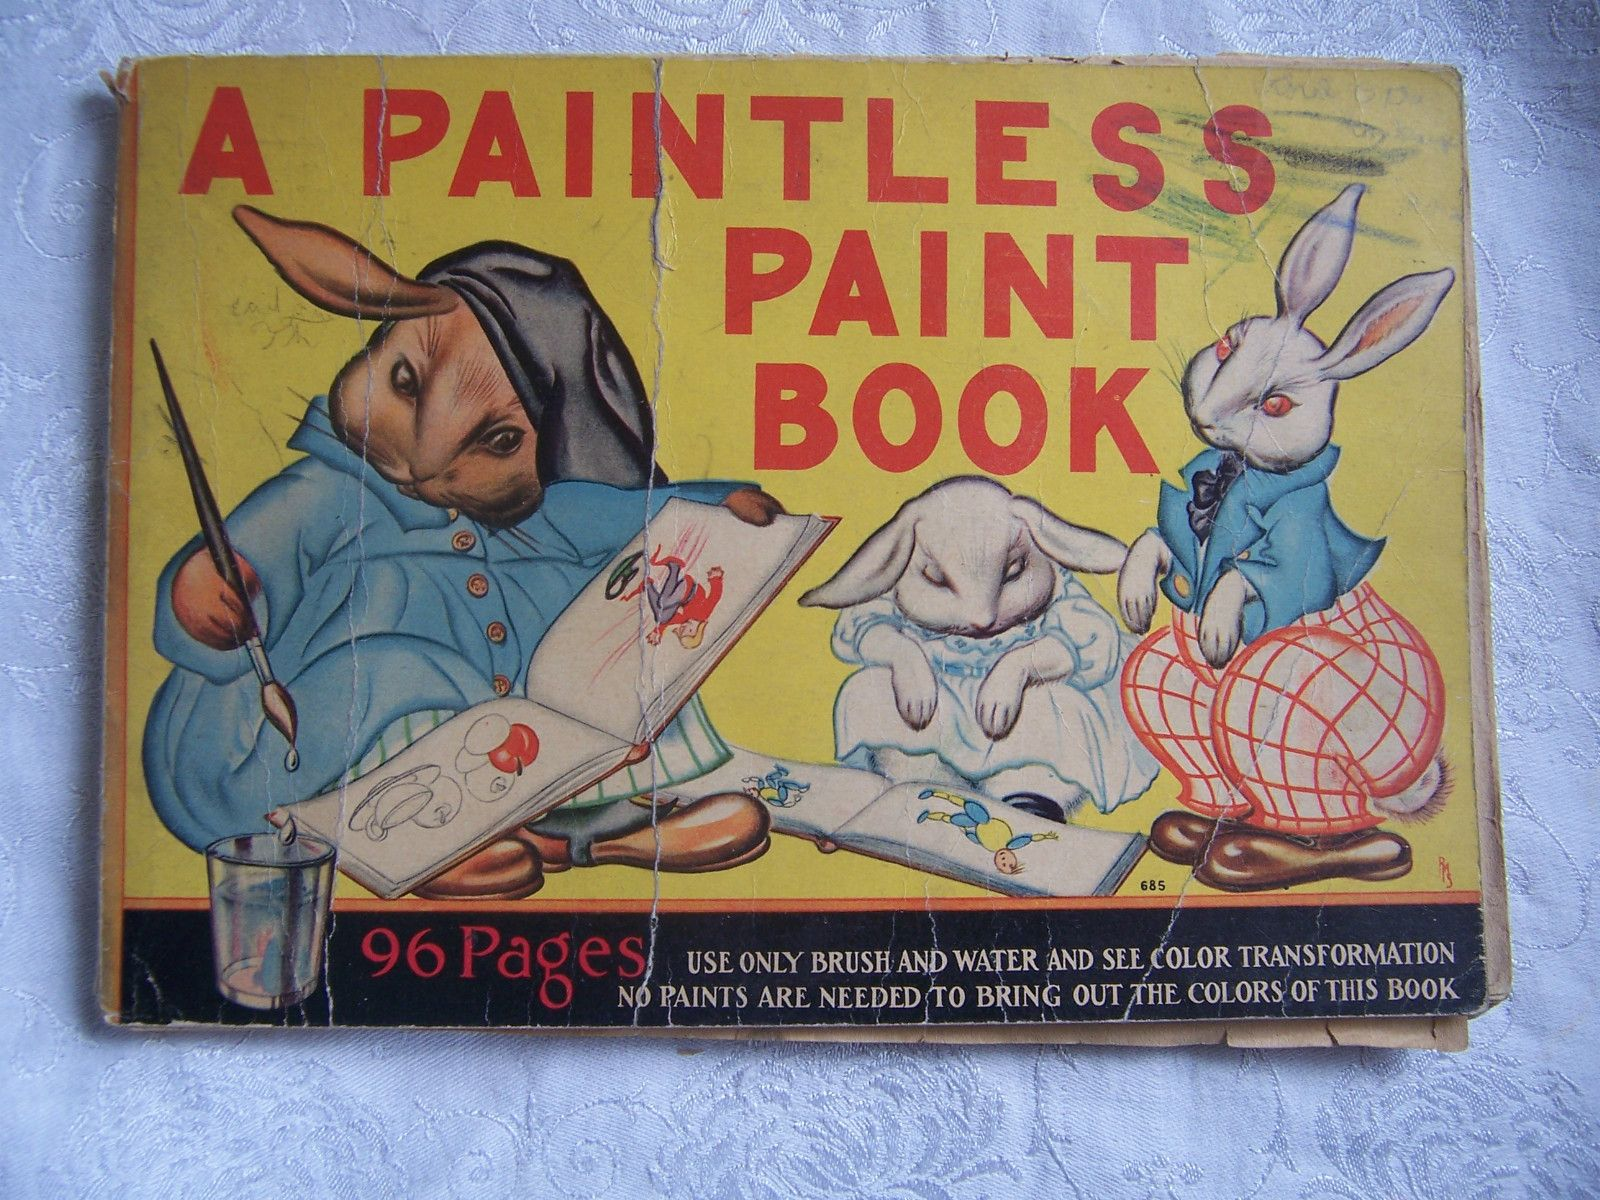 Vintage Big Paint Book Paintless Paint Book1930s Coloring Book 685 Whitman Painted Books Coloring Books Painting